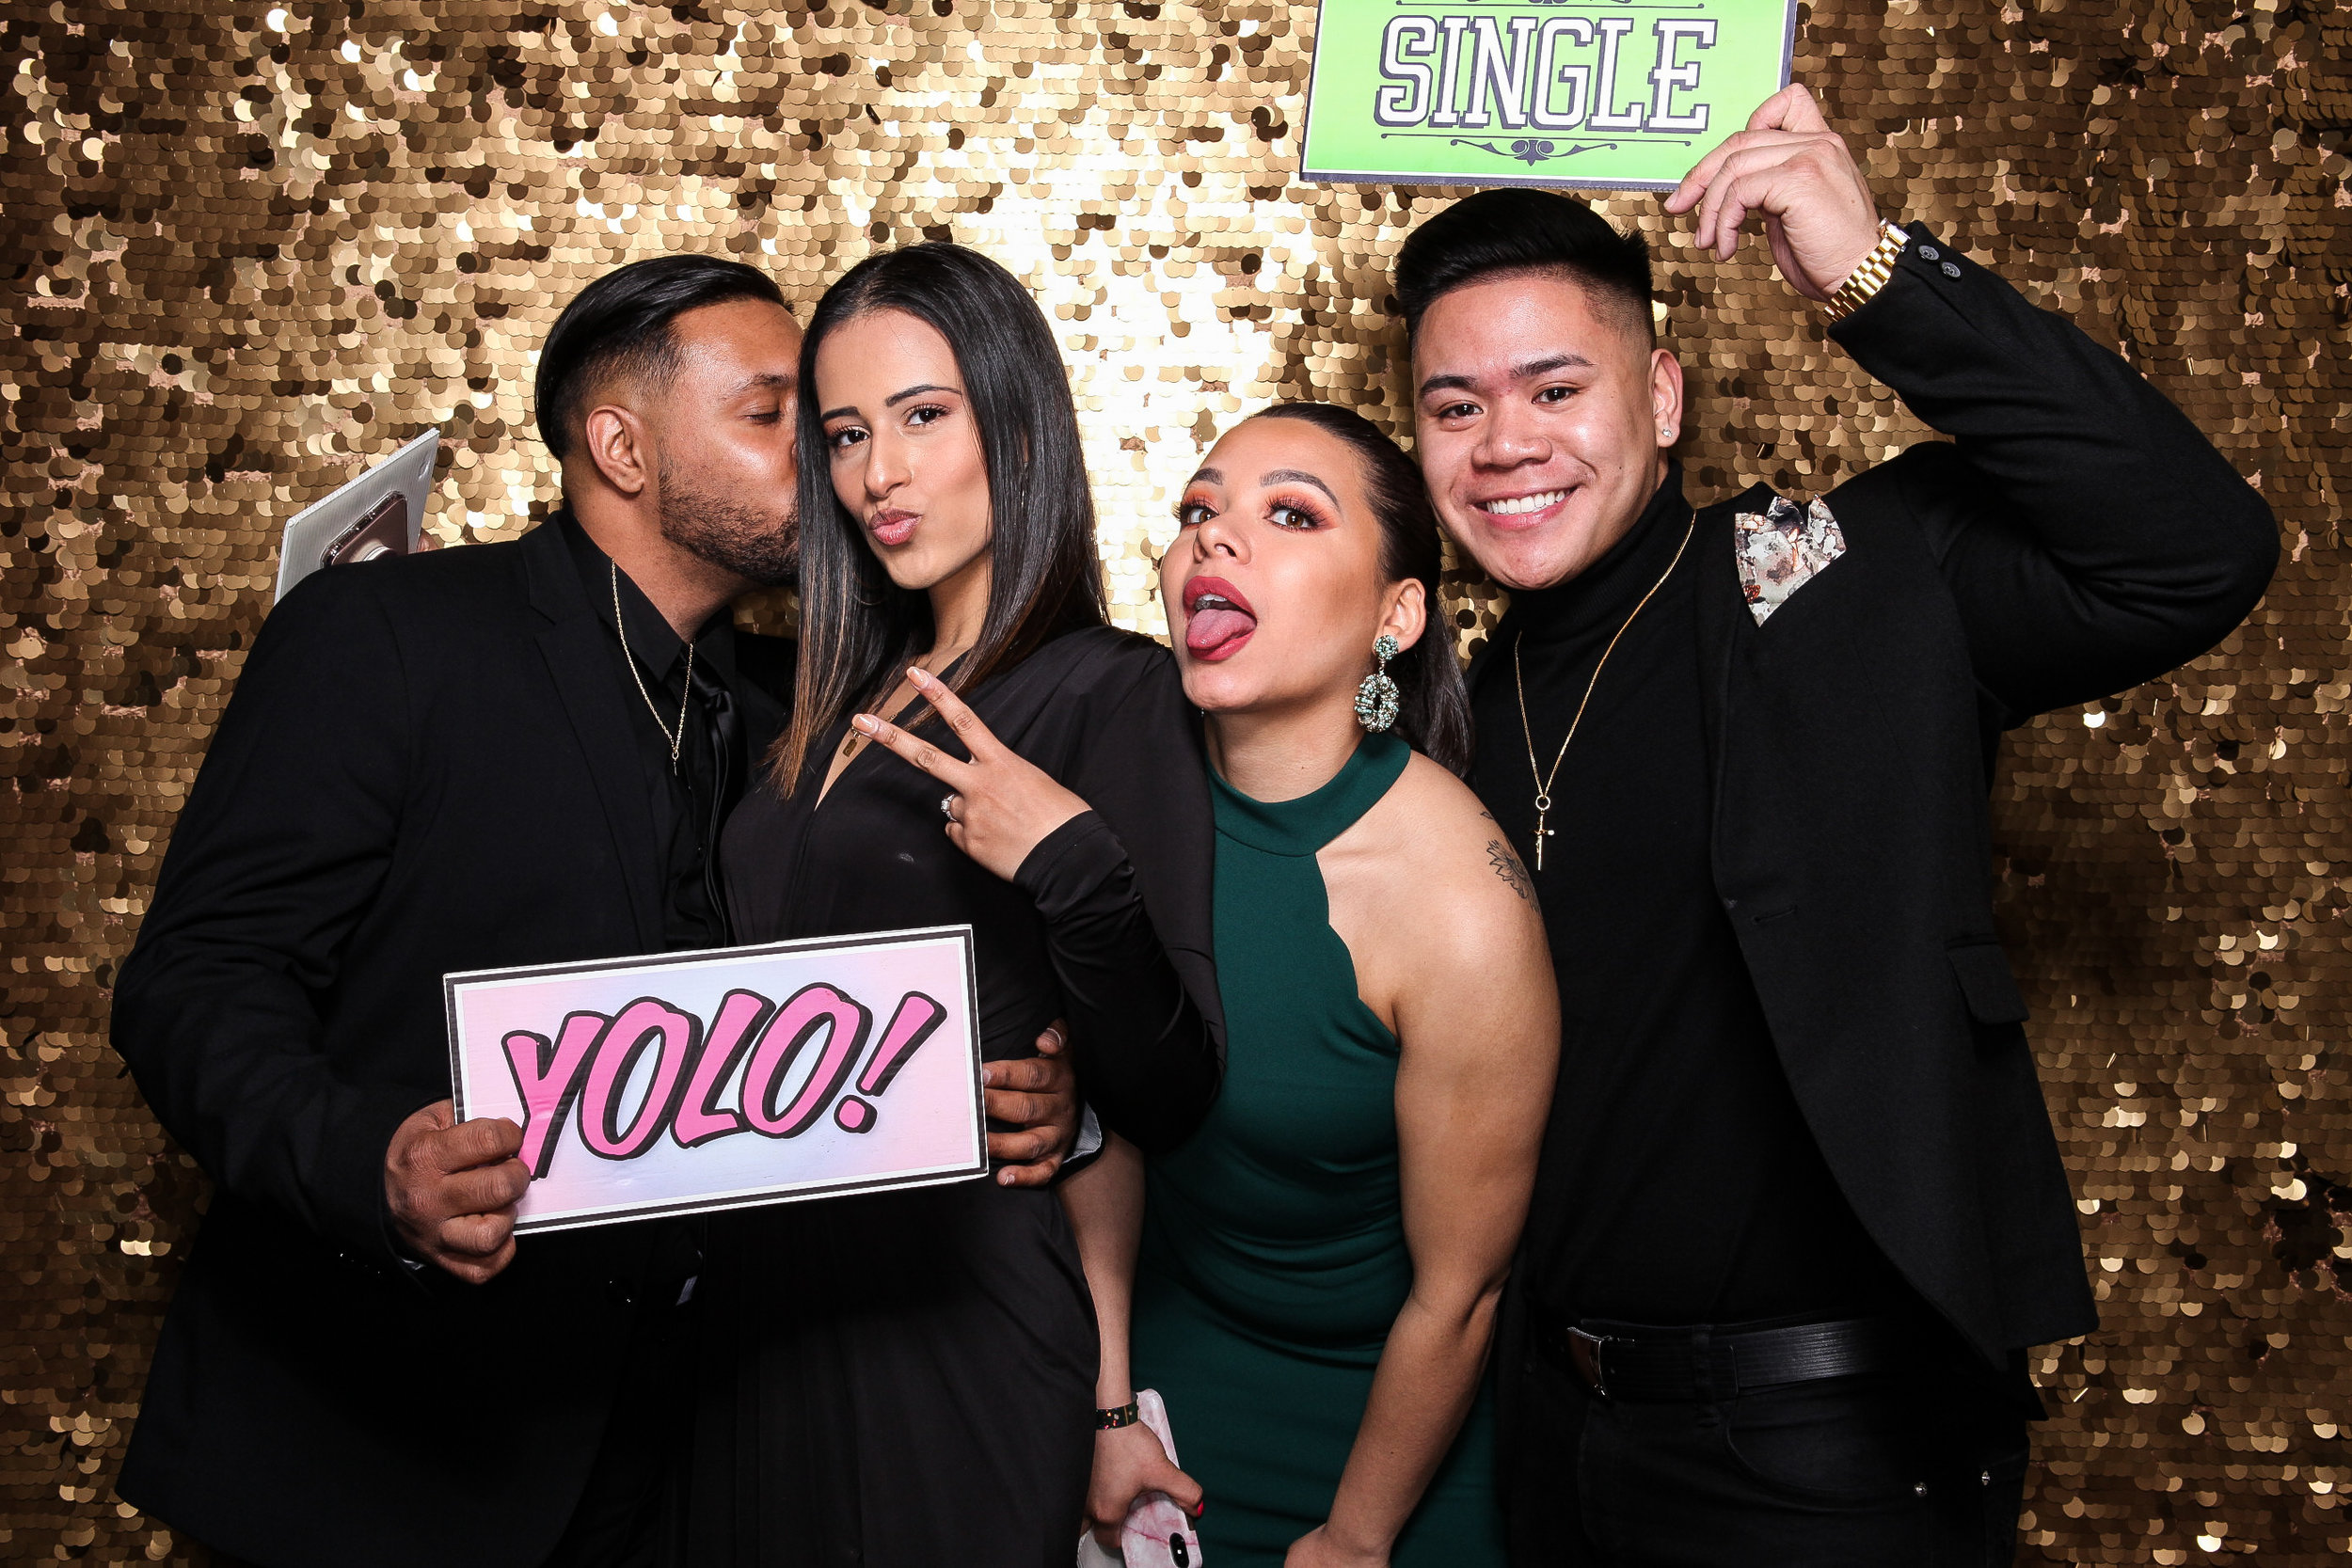 20190503_Adelphi_Senior_Formal-141.jpg